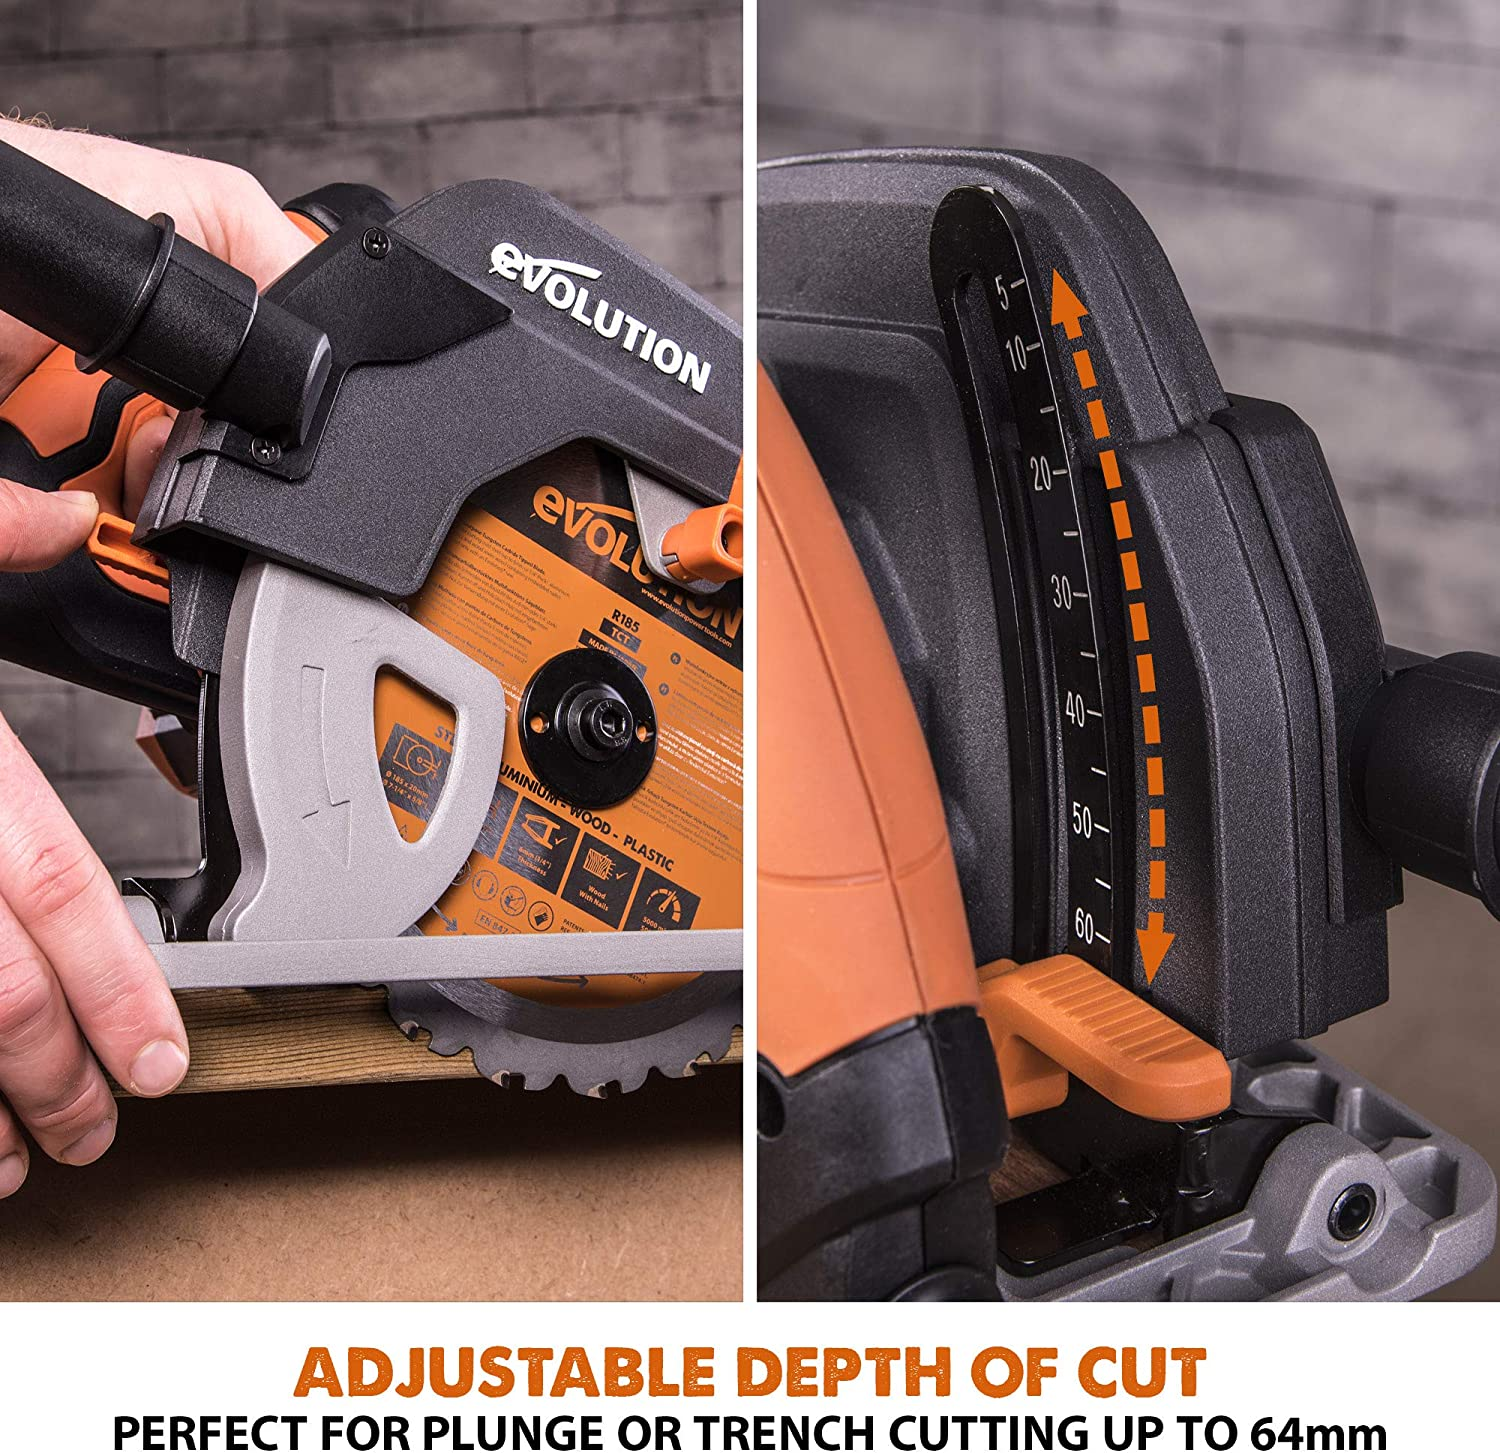 Evolution Power Tools Build R185CCS Multi-Material Circular Saw 110 V with Wood Carbide-Tipped Blade 185 mm 185 mm